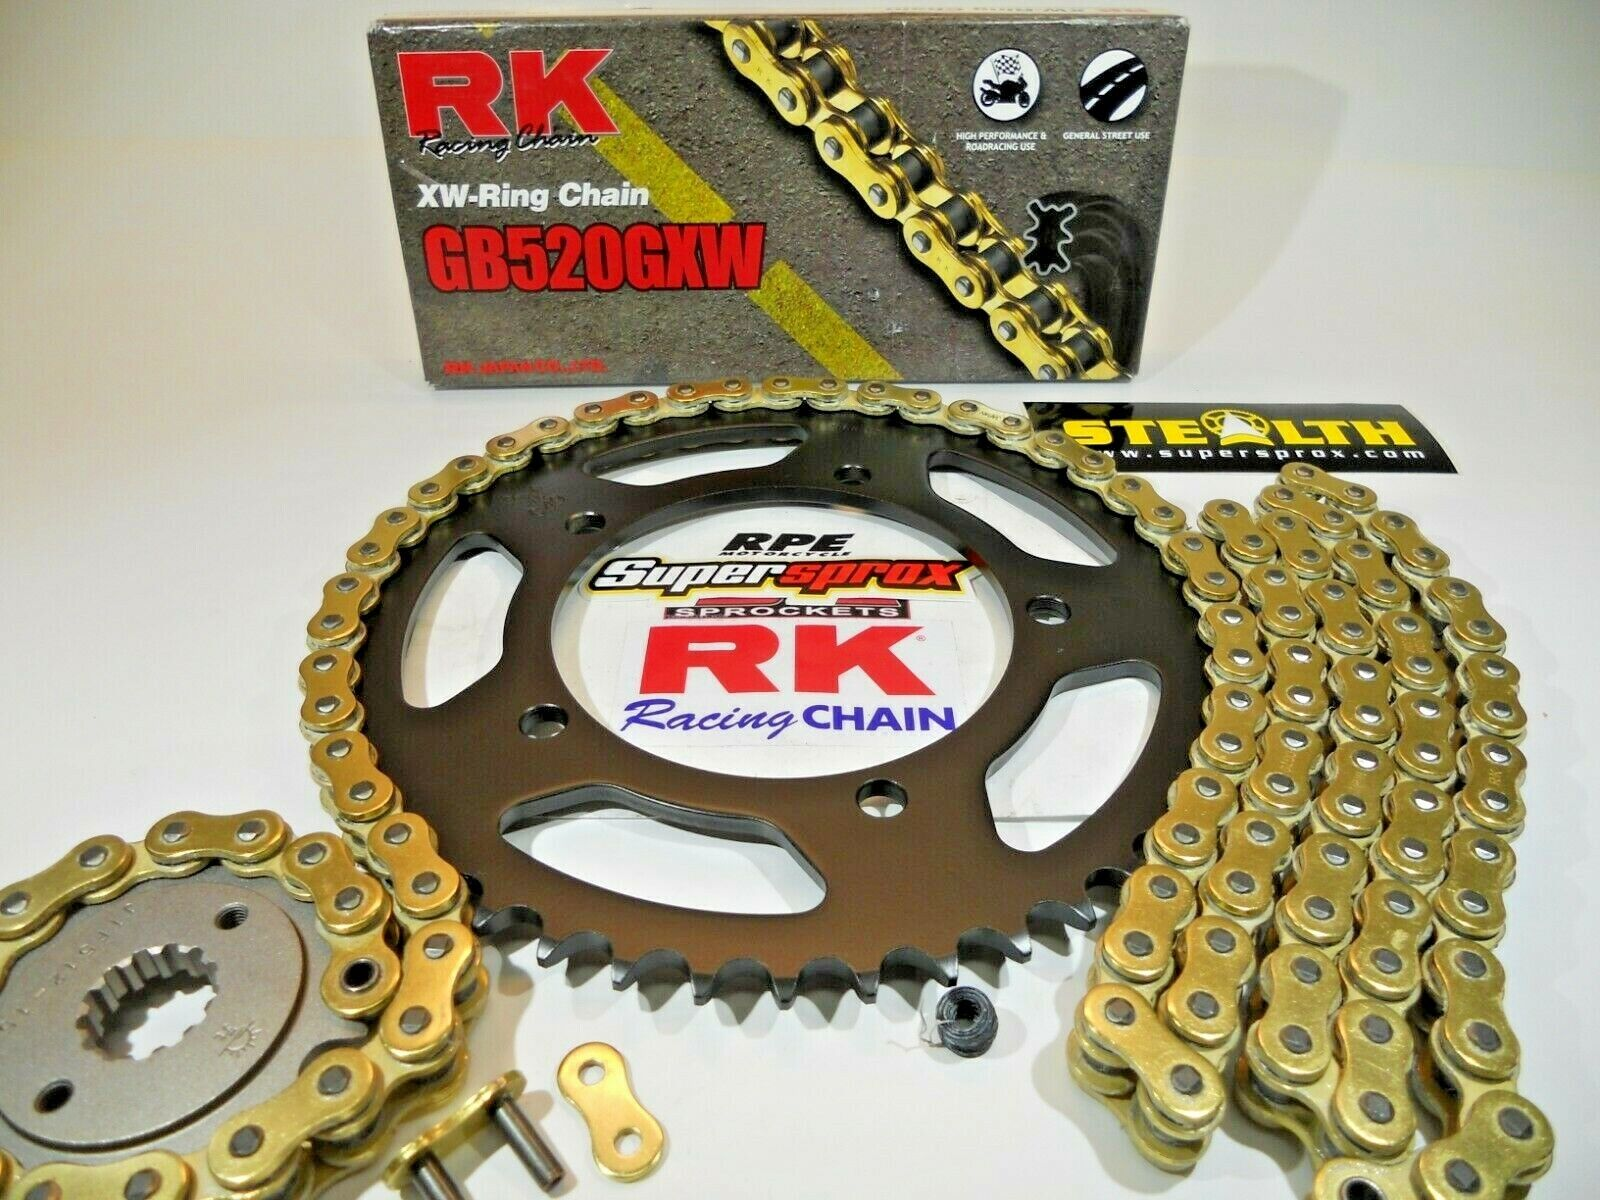 RK Racing Chain 530GXW-106 106-Links XW-Ring Chain with Connecting Link